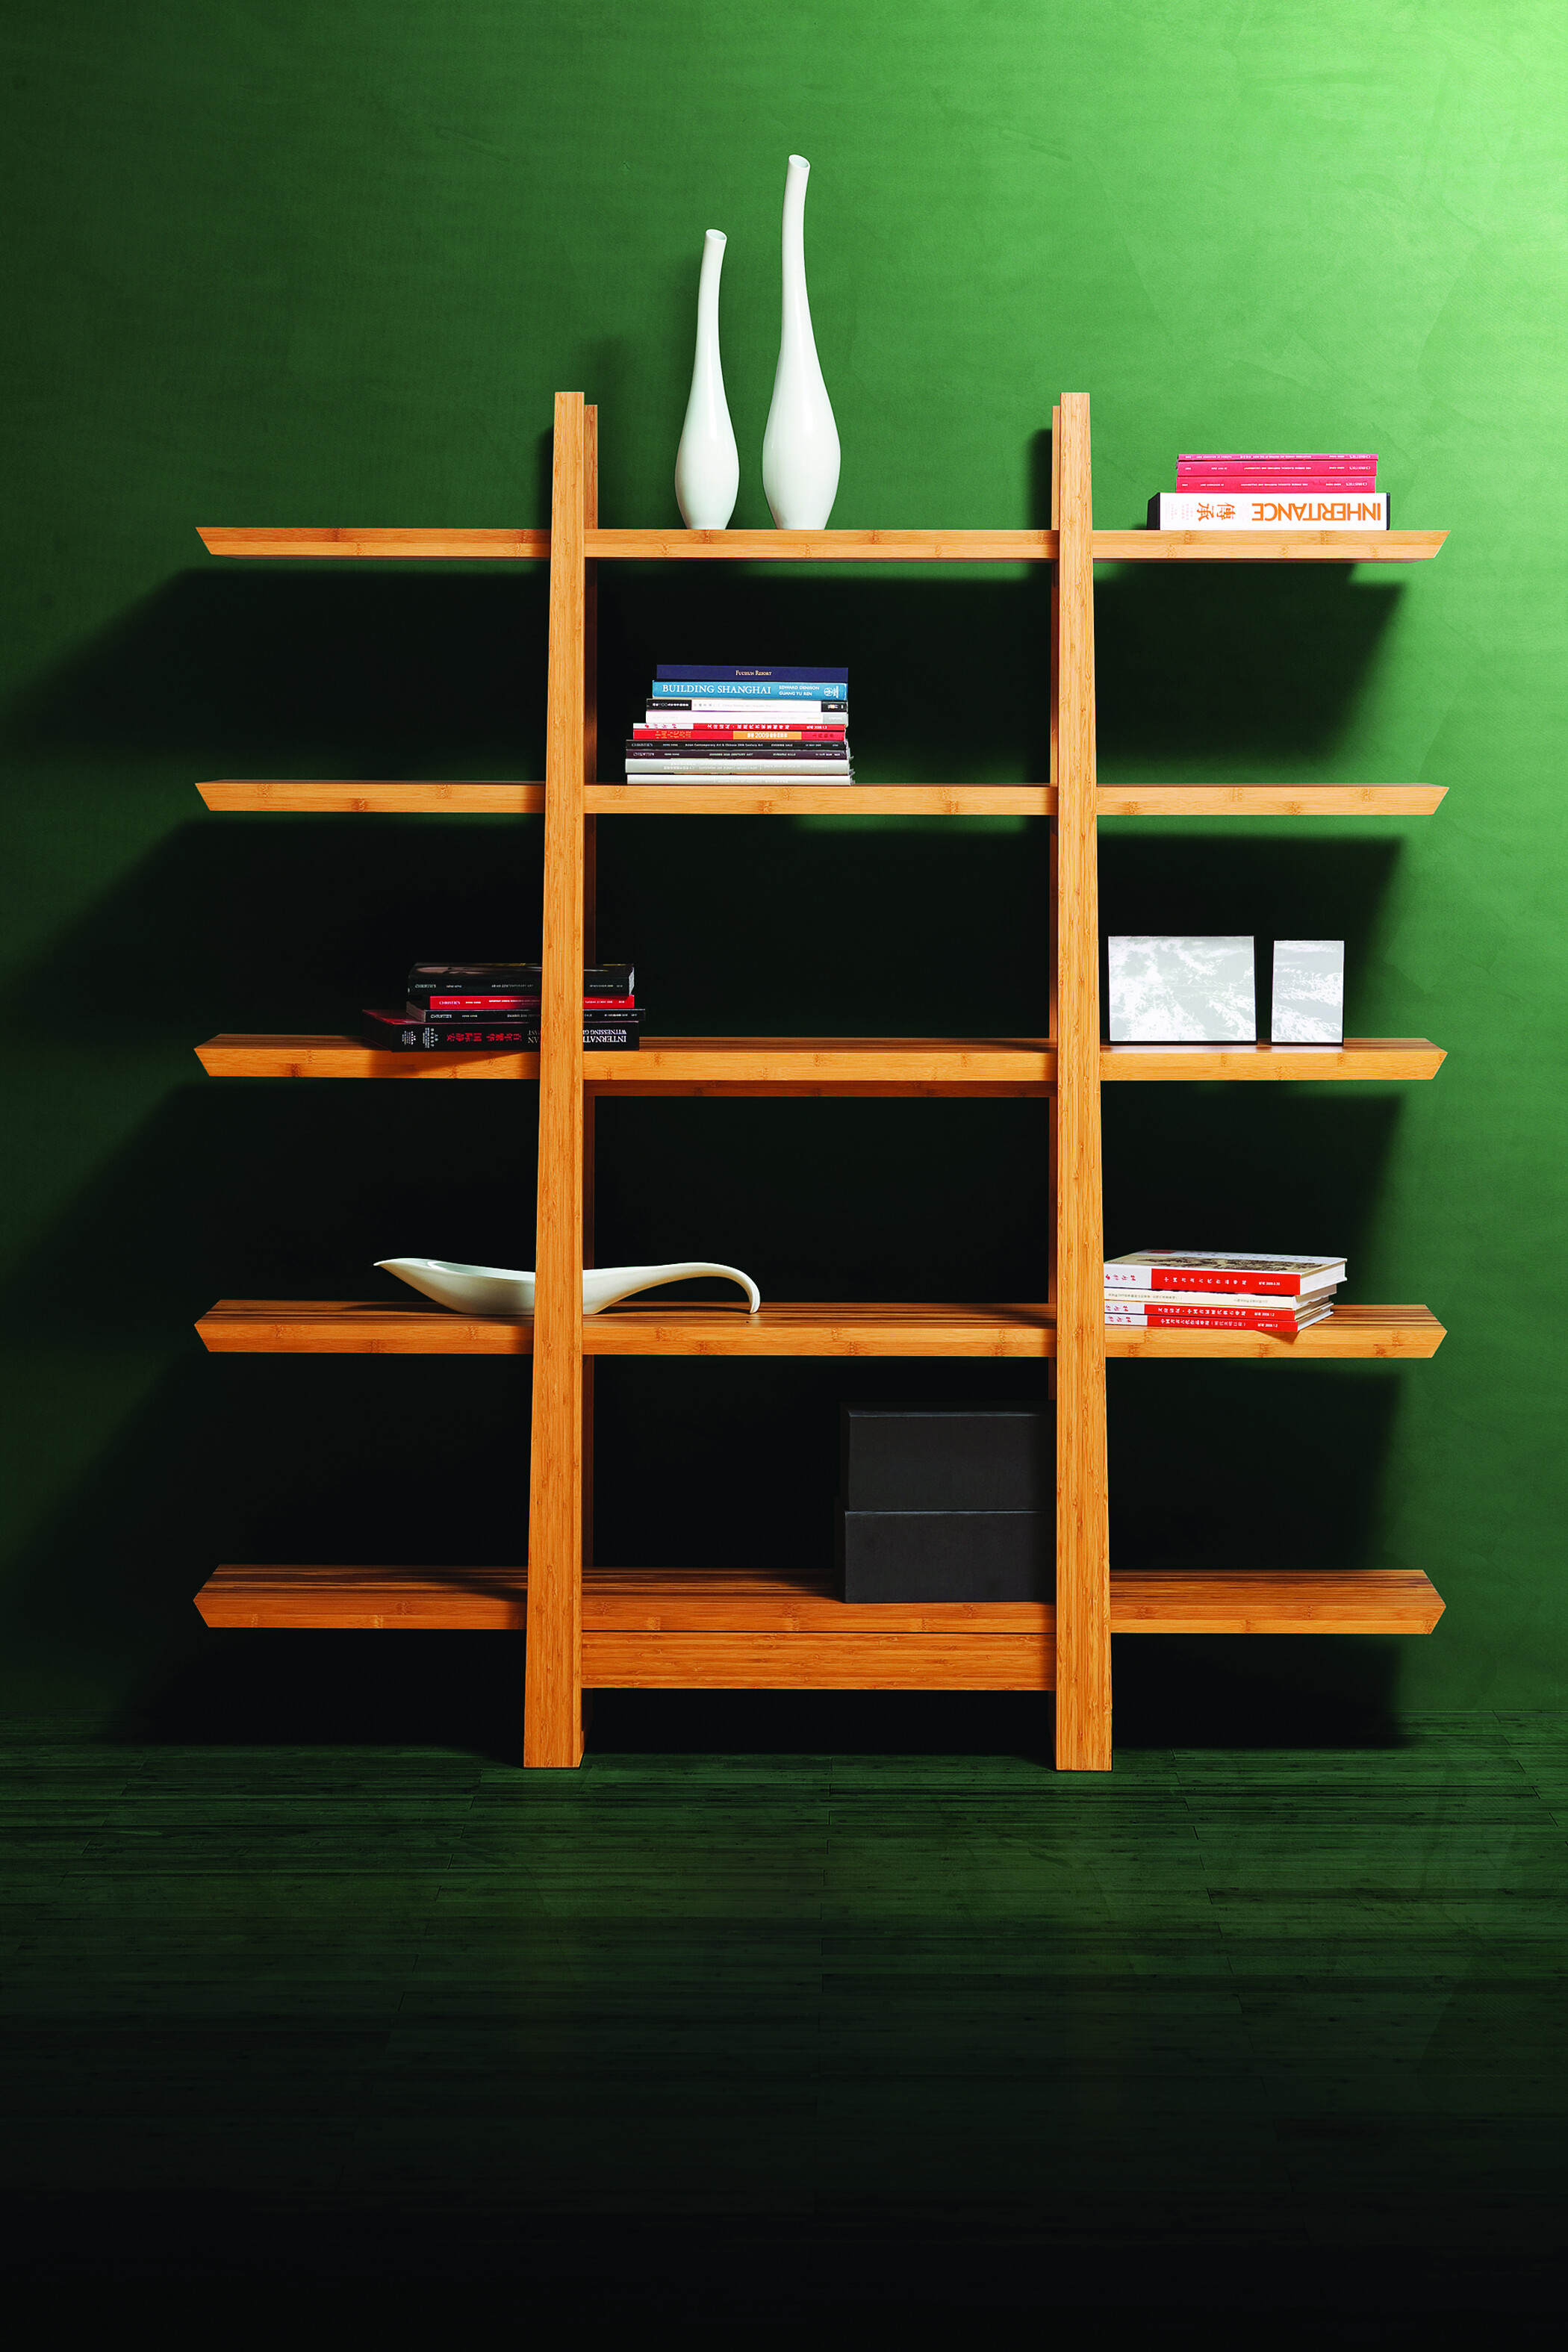 Magnolia Shelf